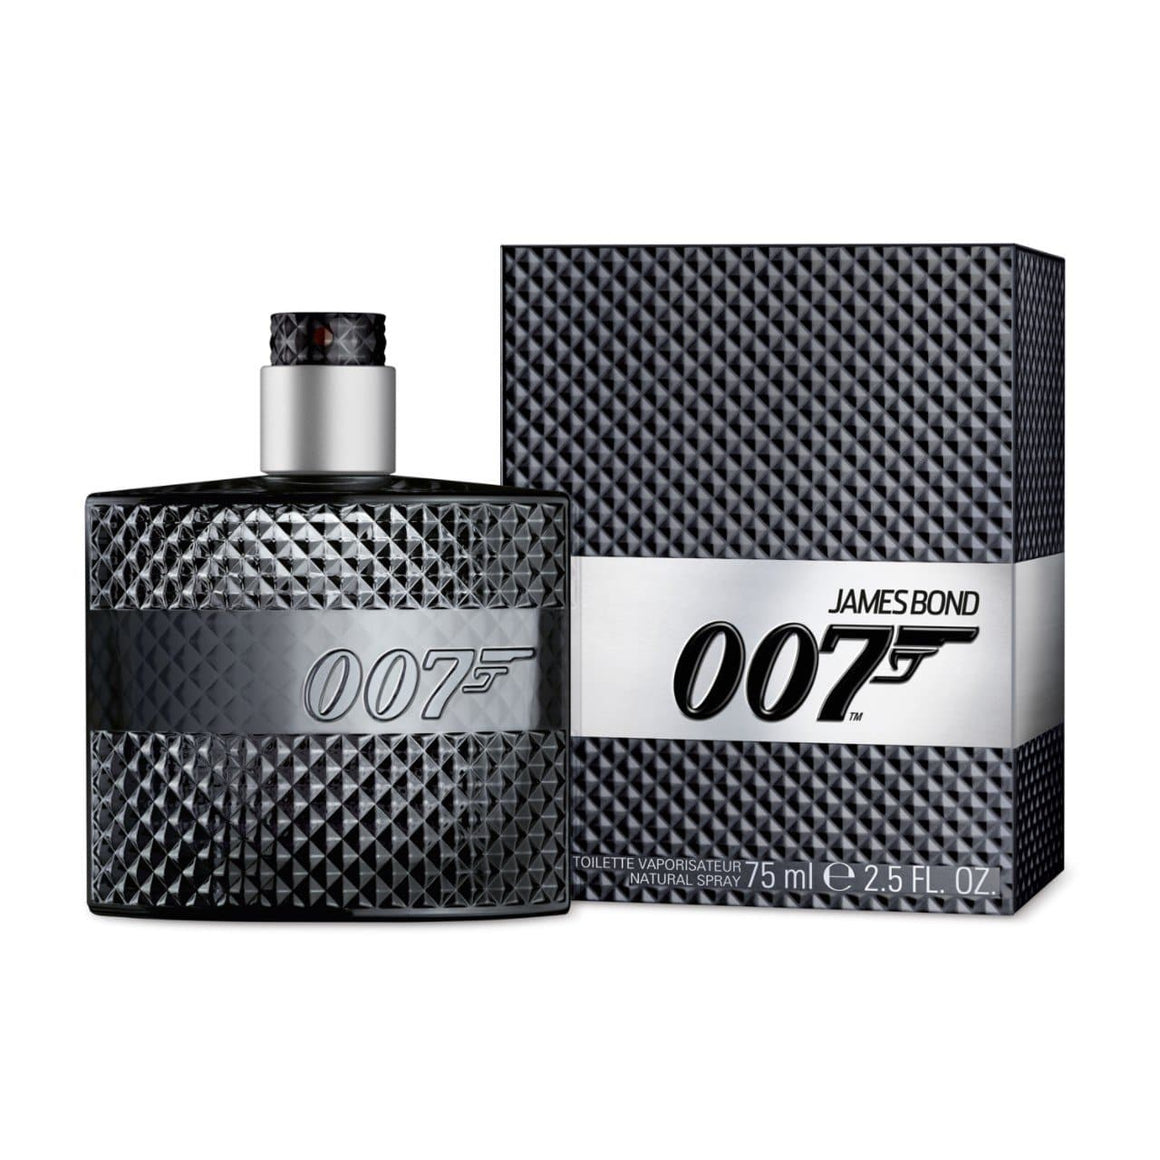 James Bond 007 Eau de Toilette (75ml)